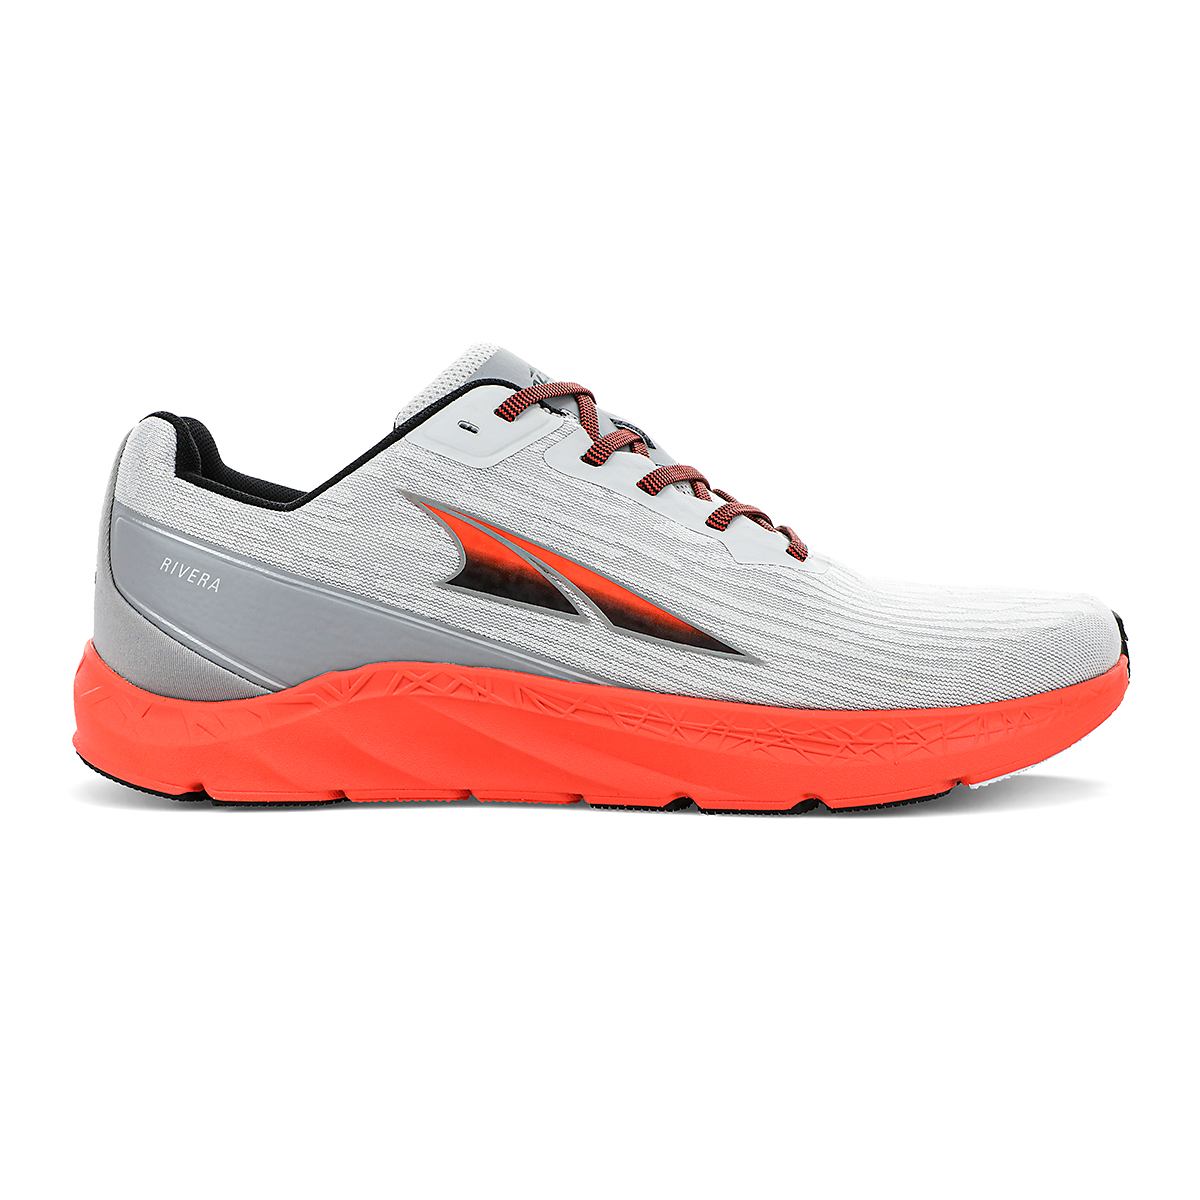 Men's Altra Rivera Running Shoe - Color: Gray/Orange - Size: 7 - Width: Regular, Gray/Orange, large, image 1